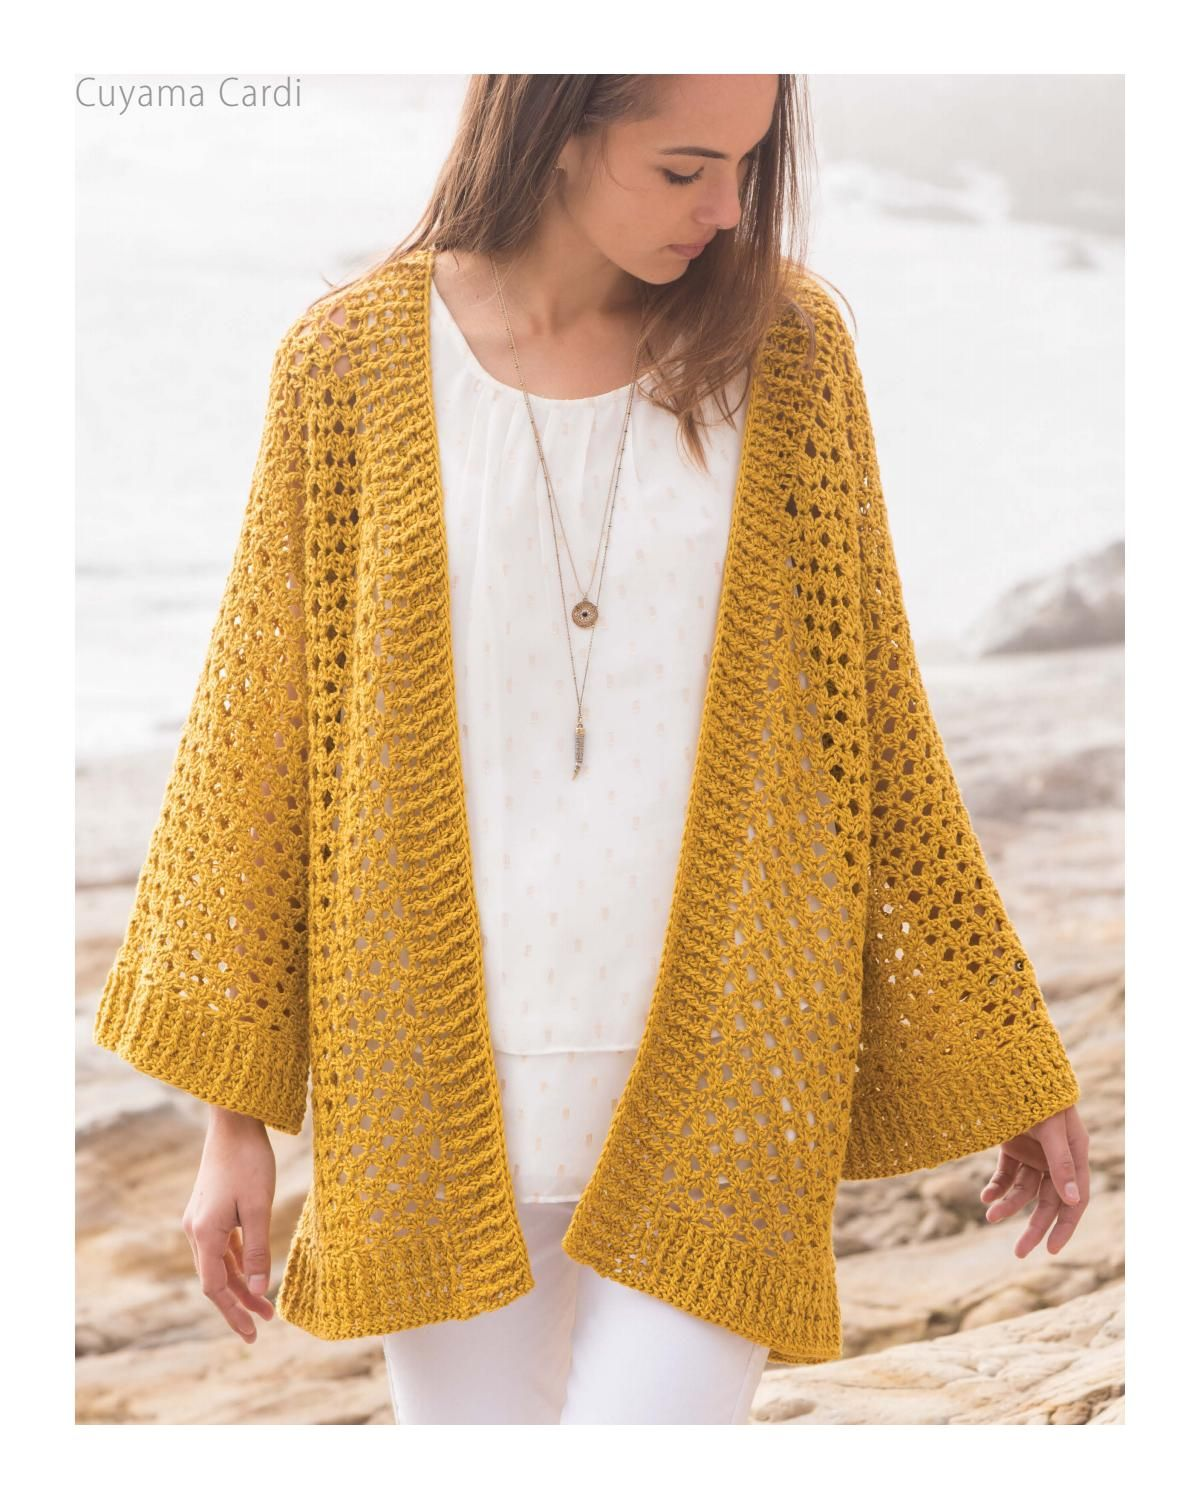 Annie's Spring Breeze Crochet Pattern Collection 2017 by Annie's - issuu